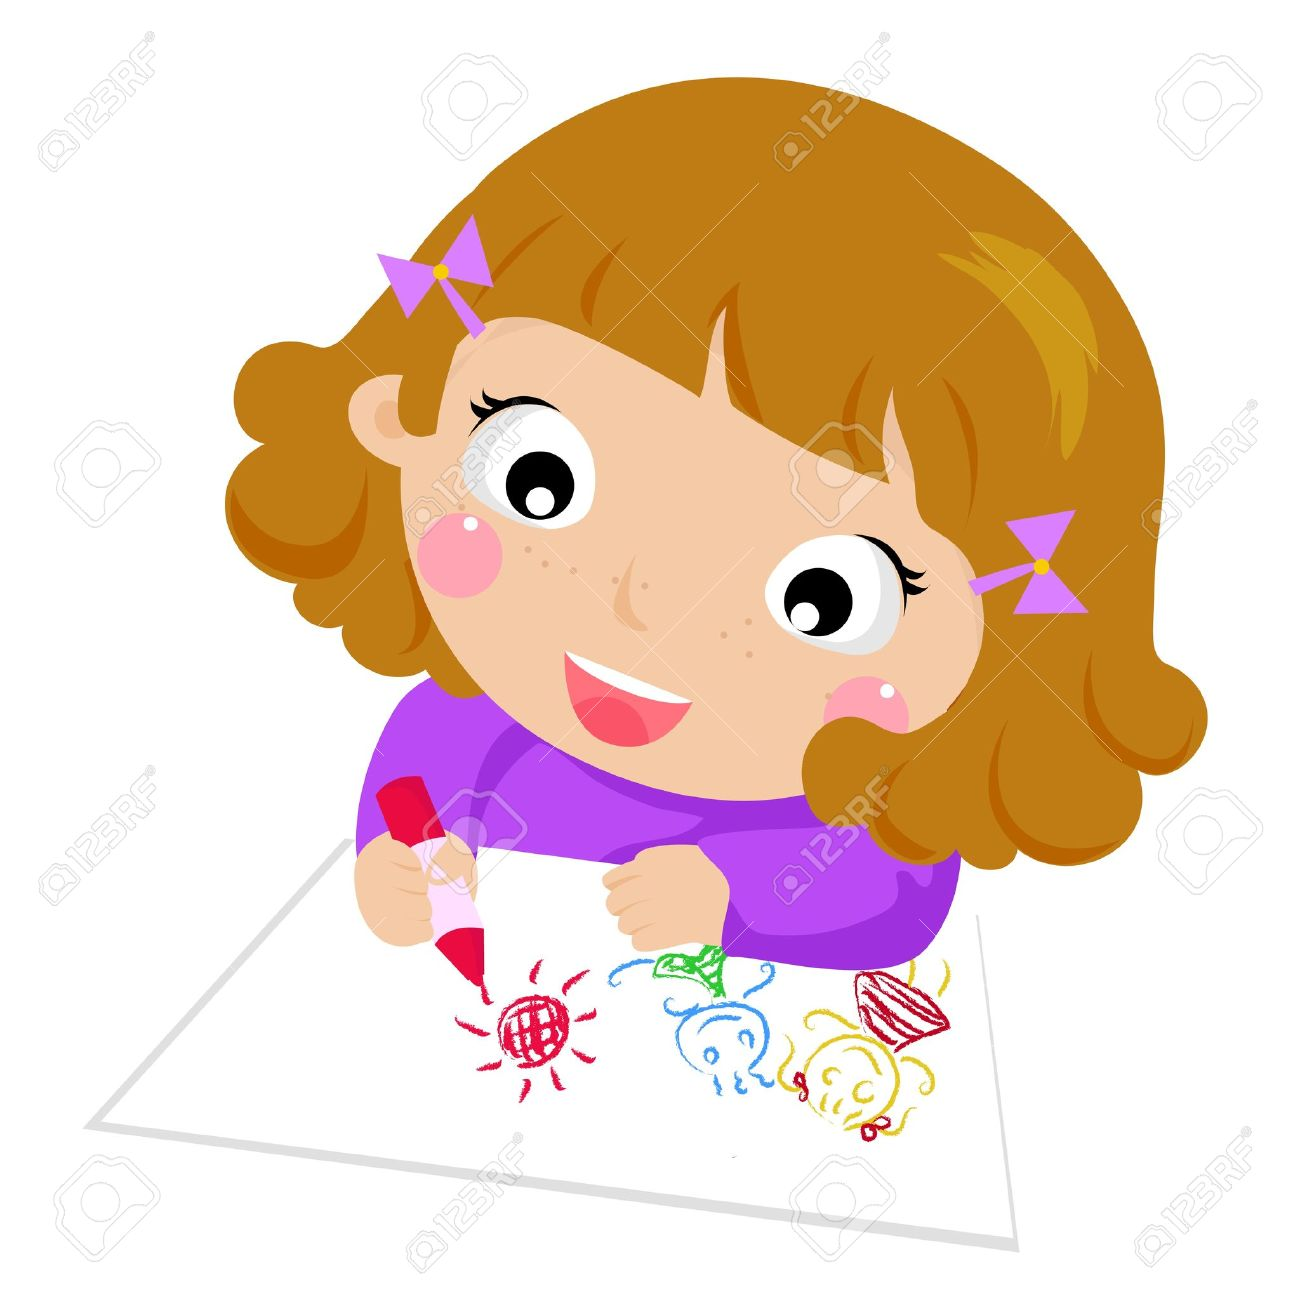 Children S Drawings Clipart